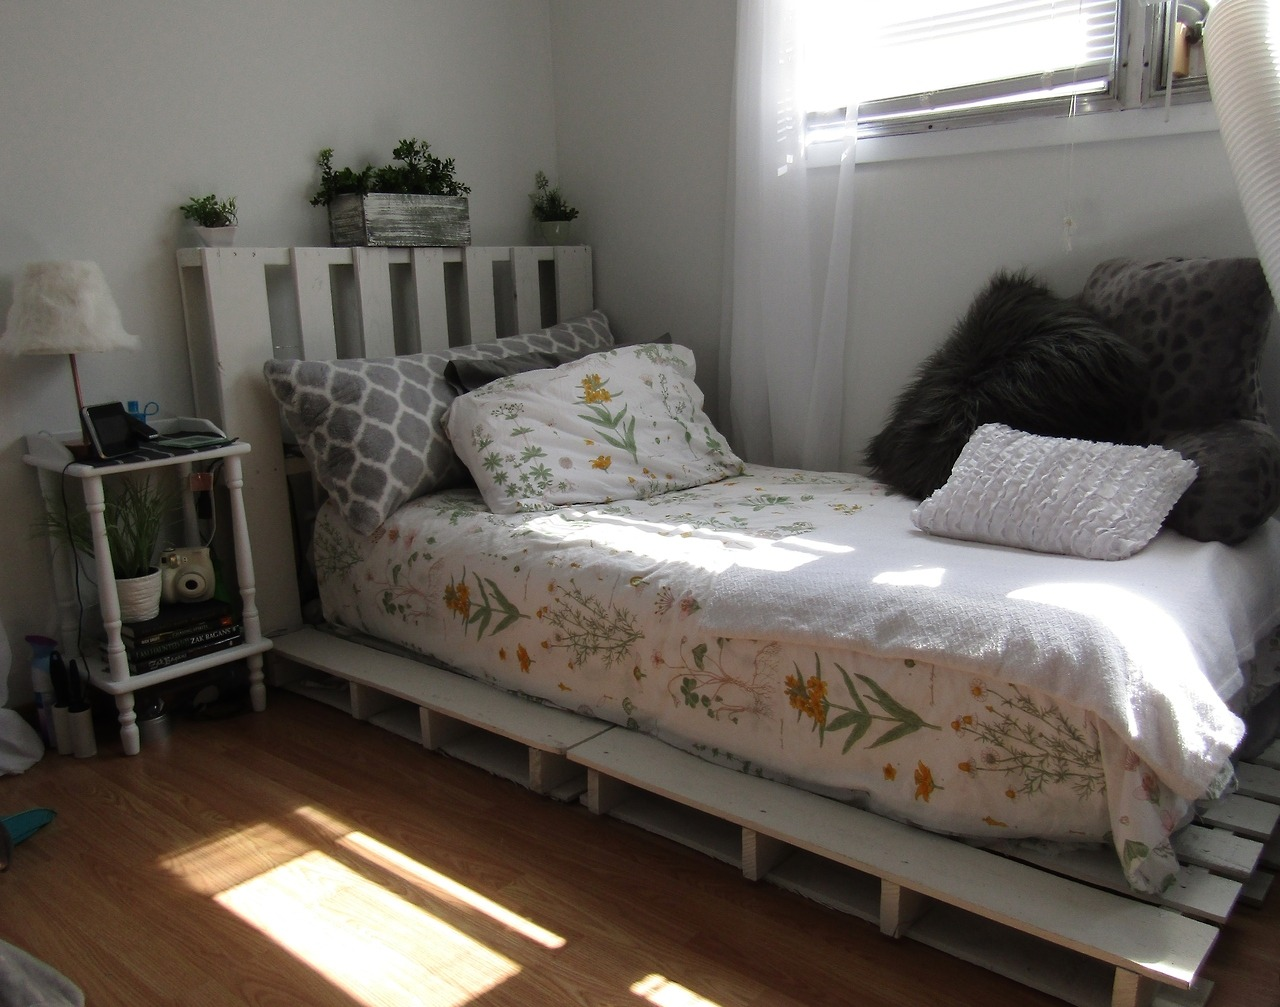 New pallet bed ??? - 'Make Your Own Luck'? on Pallet Bed Room  id=67567